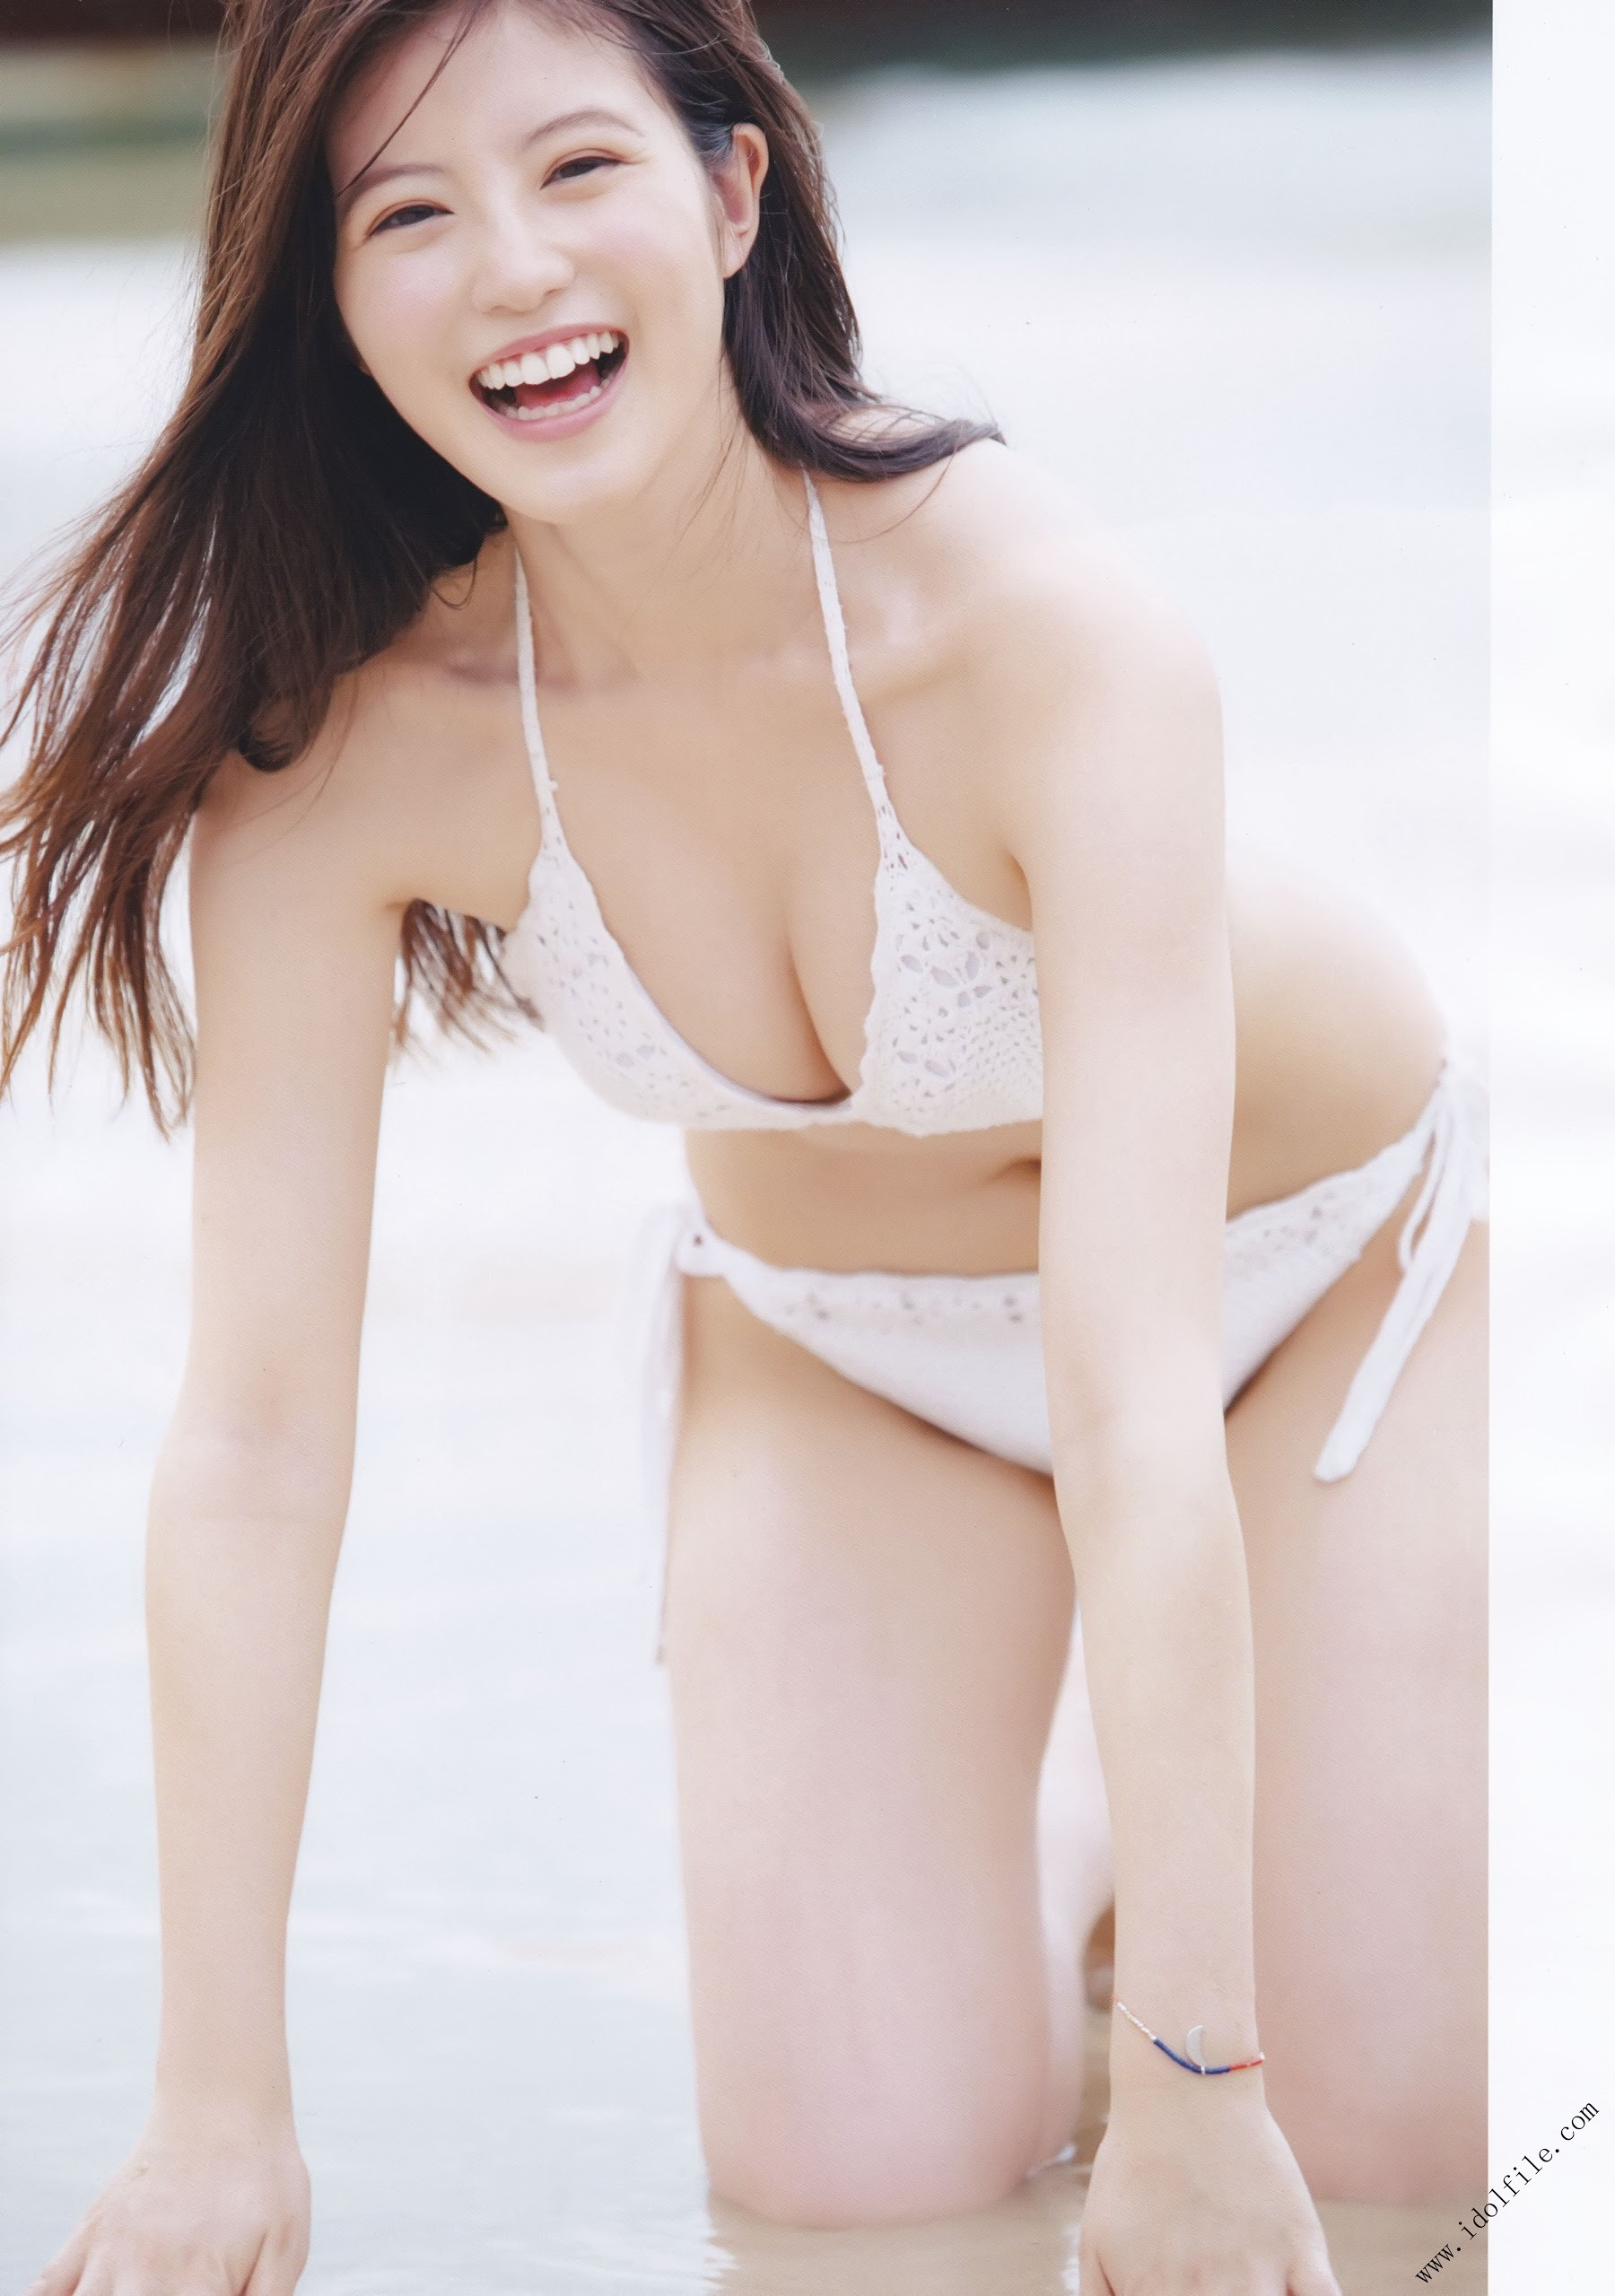 Pretty and beautiful, 22 years old and innocent Moving to the next stage as an actress Mio Imada033